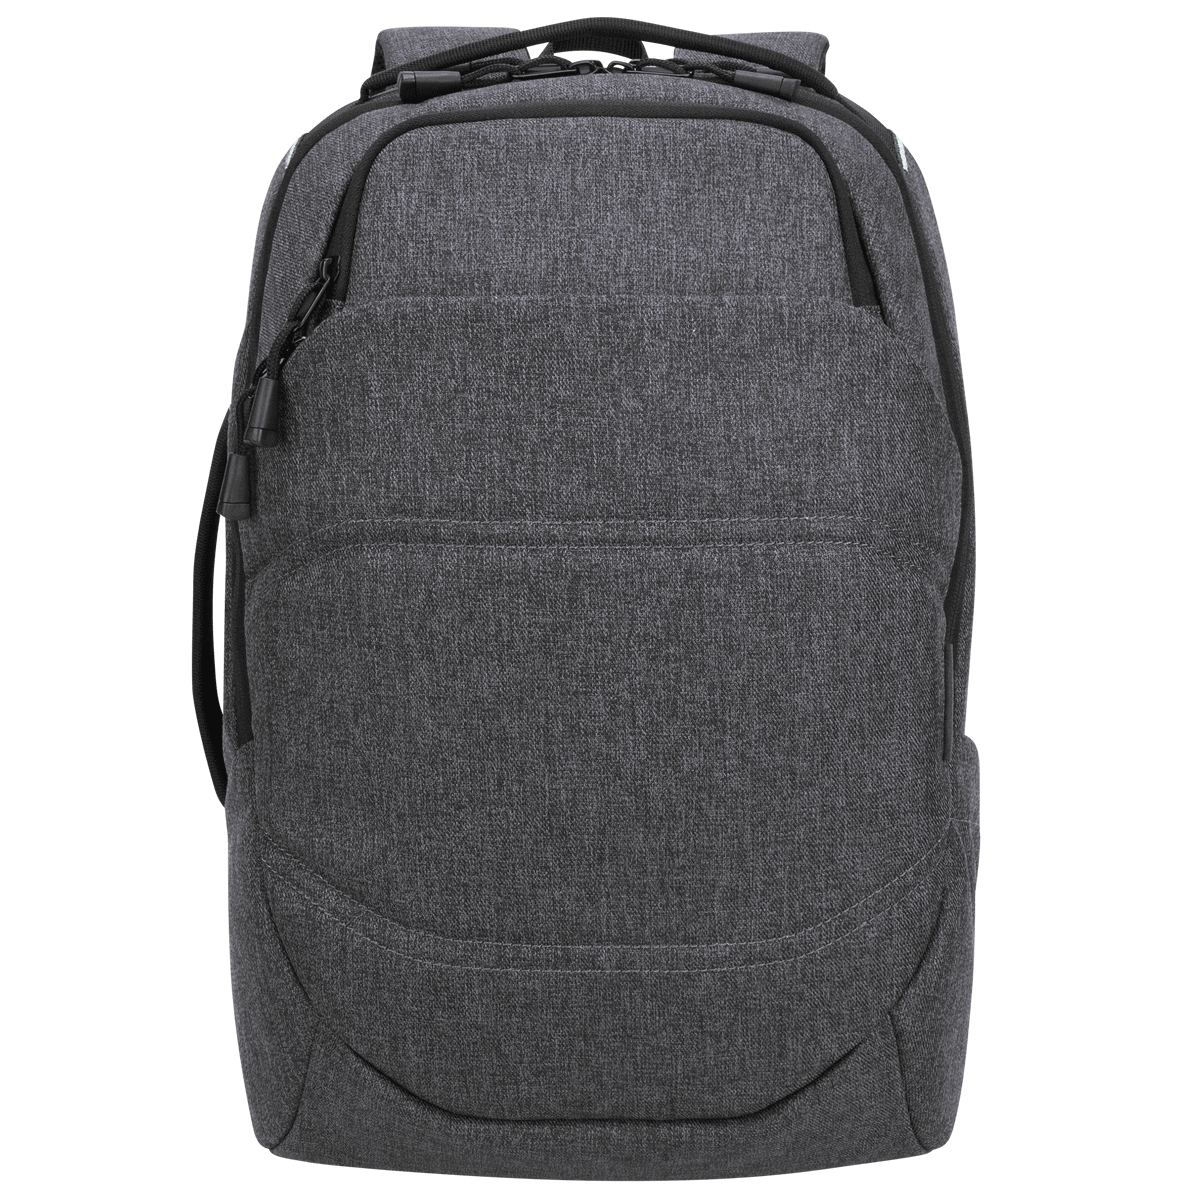 e62e7b194 Targus Official Store: Targus 15 Groove X2 Max Backpack (Charcoal ...